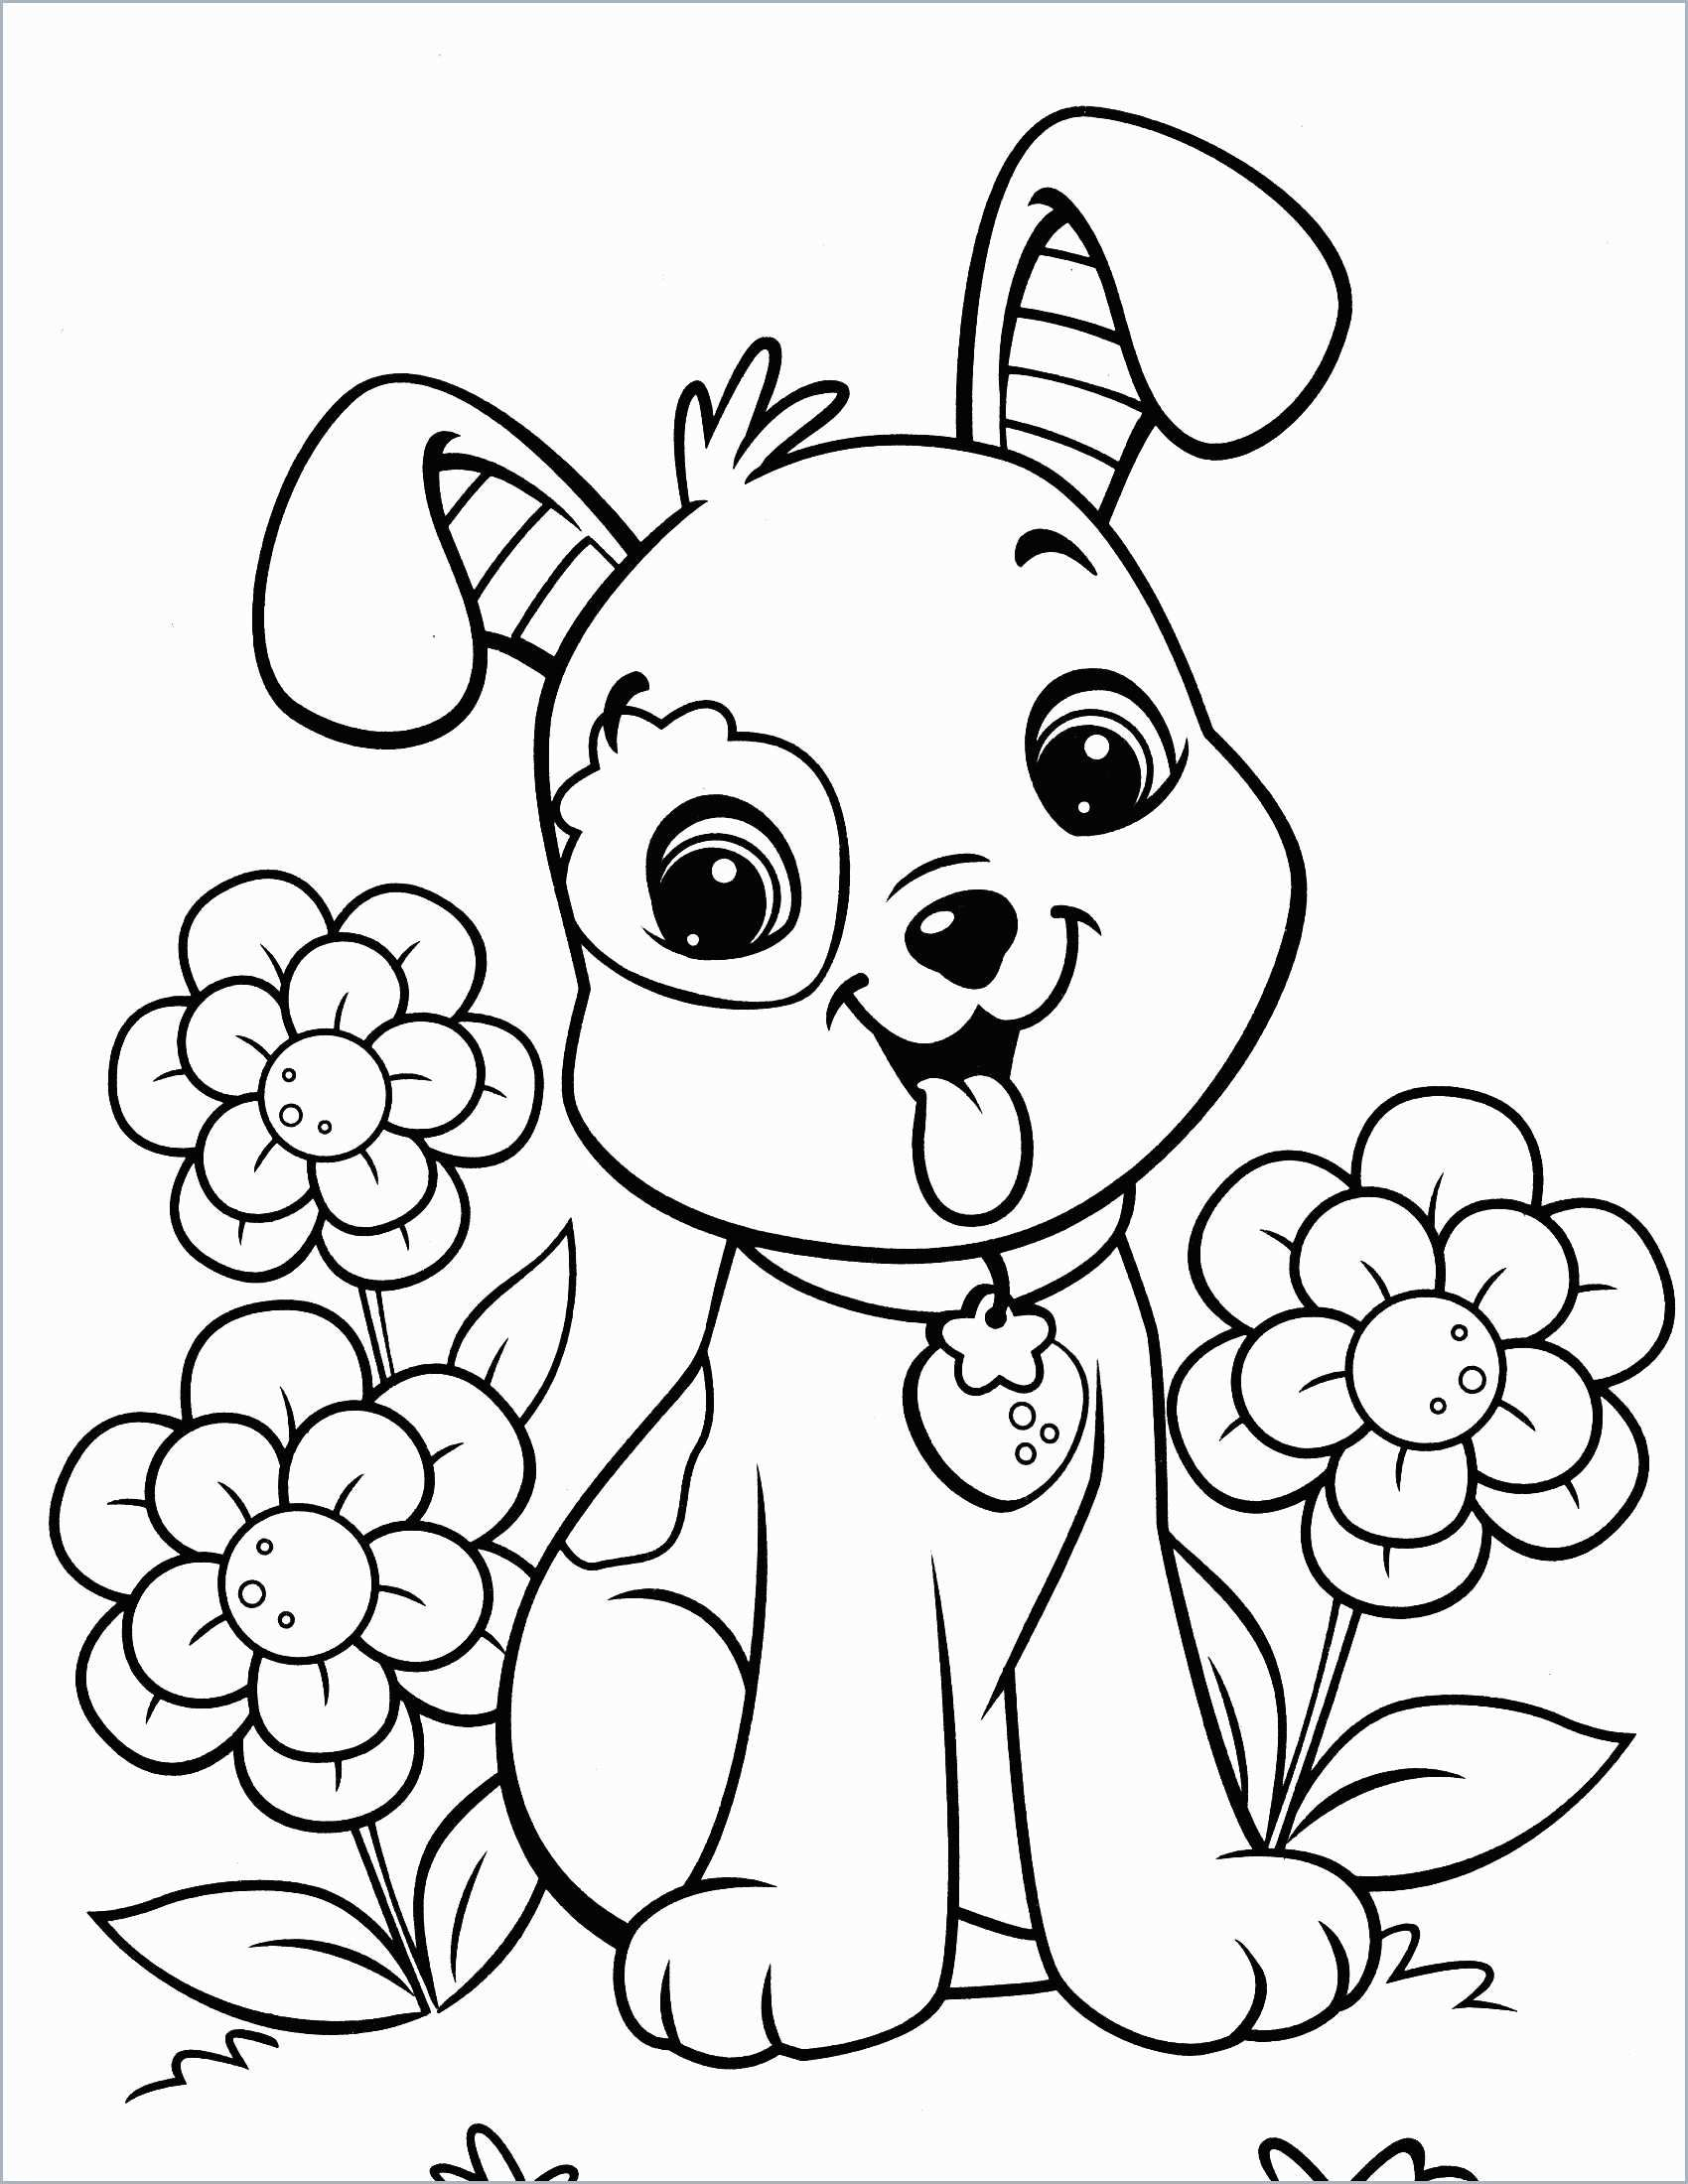 Printable Puppy Coloring Pages Ideas | Animal Coloring Pages